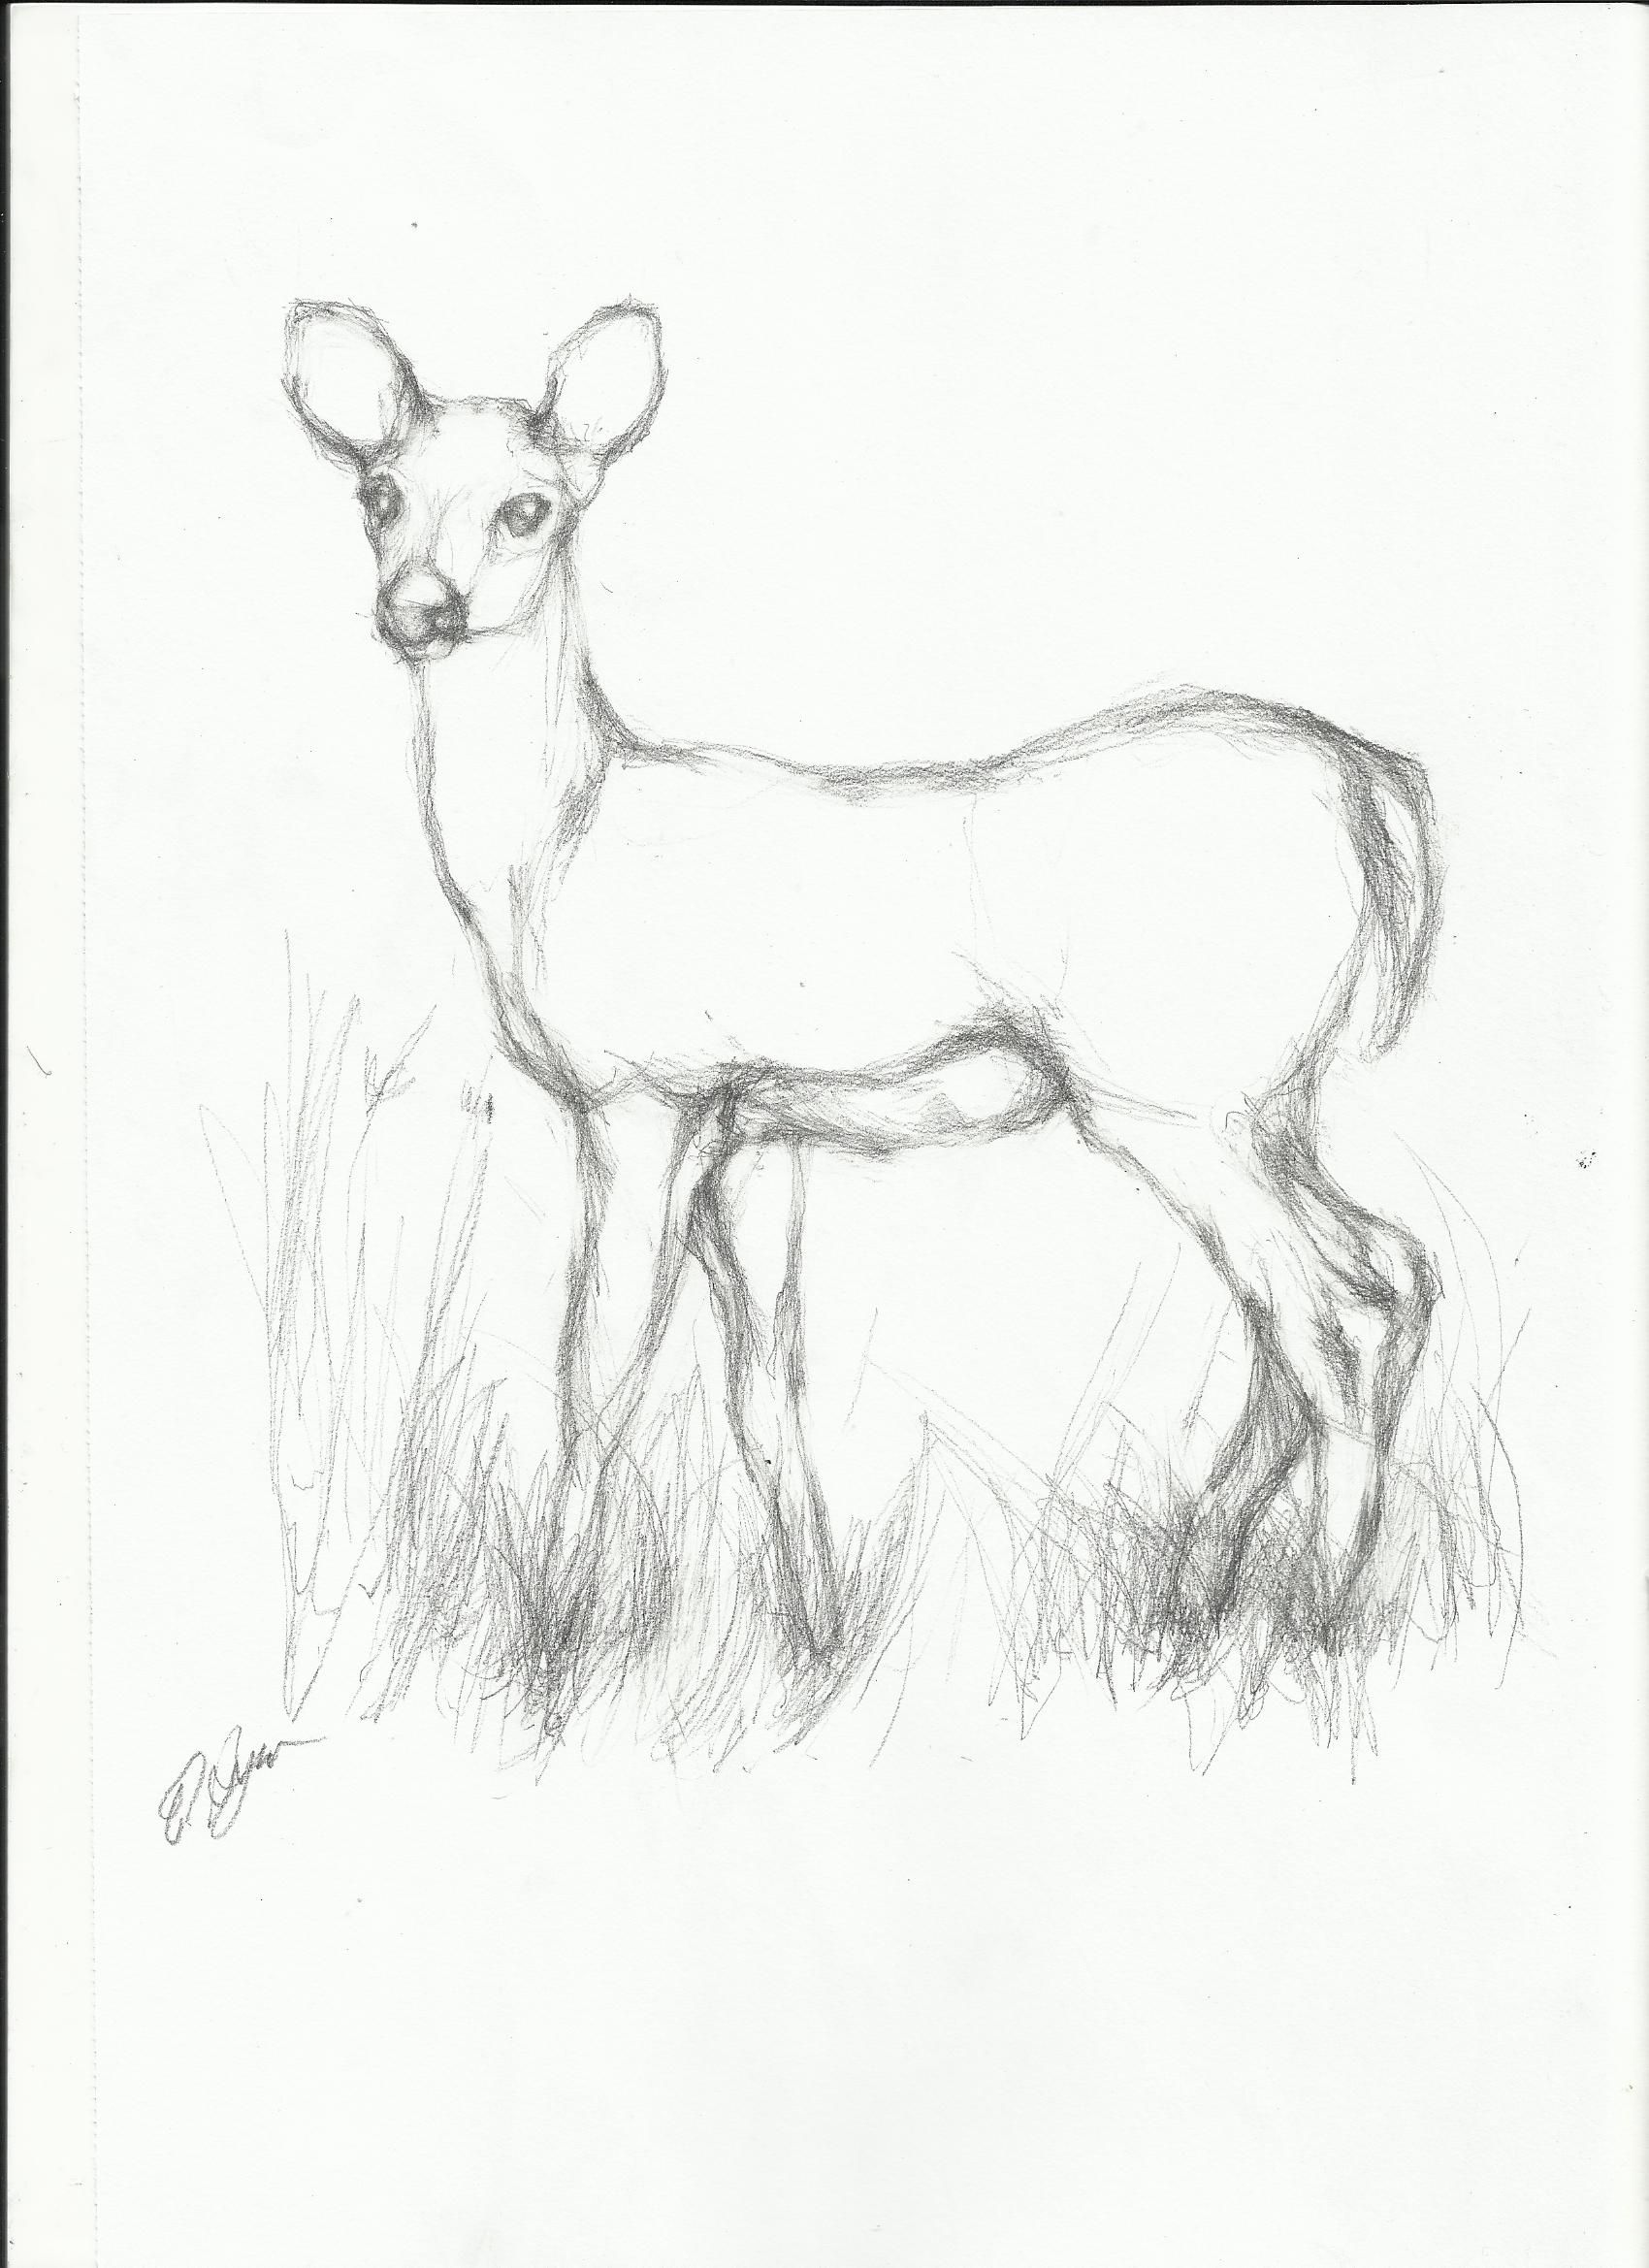 Black Line Drawings Of Animals : Simple line drawings of deer google search charcoal